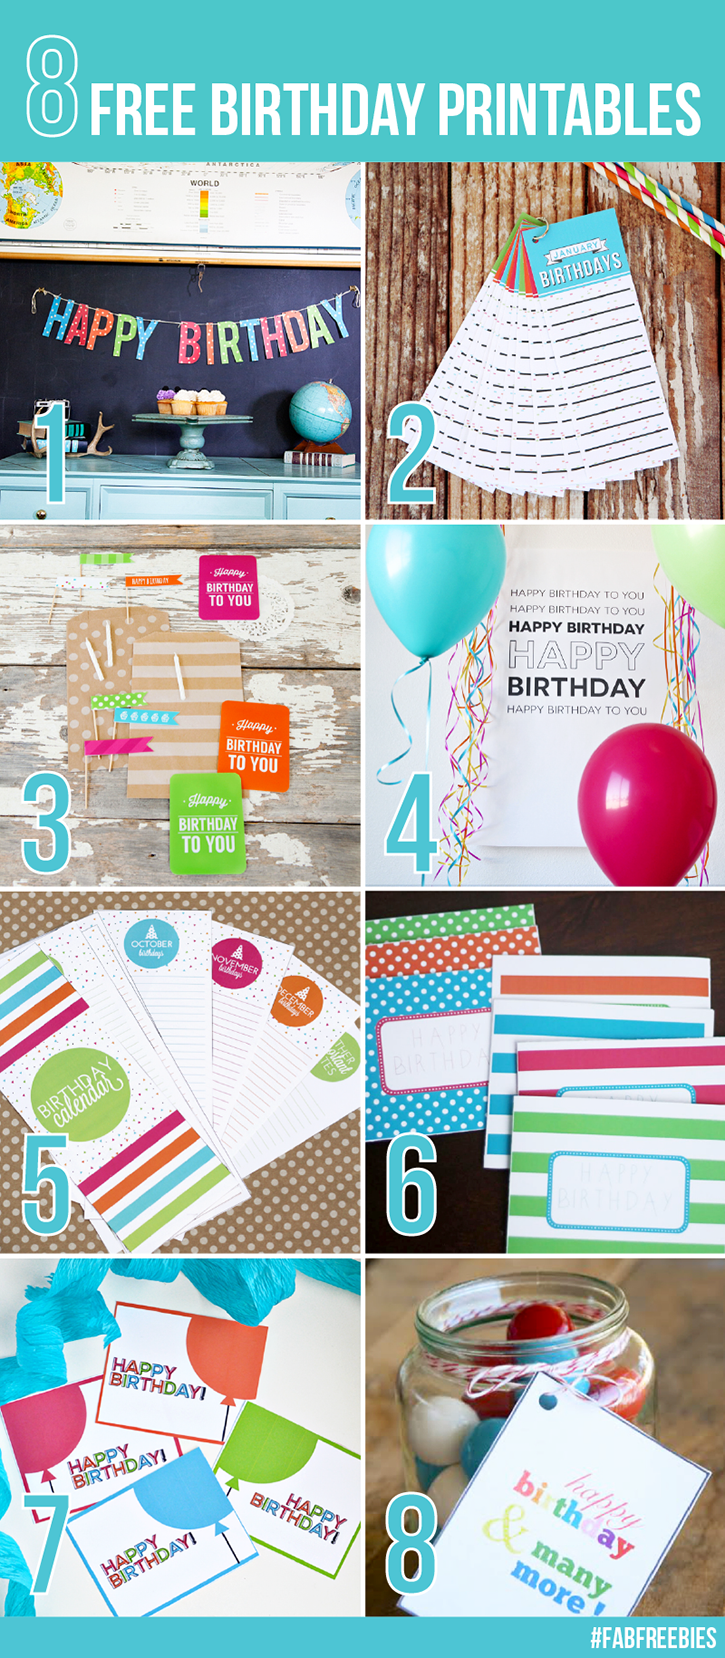 8 FREE Coordinating Birthday Printables